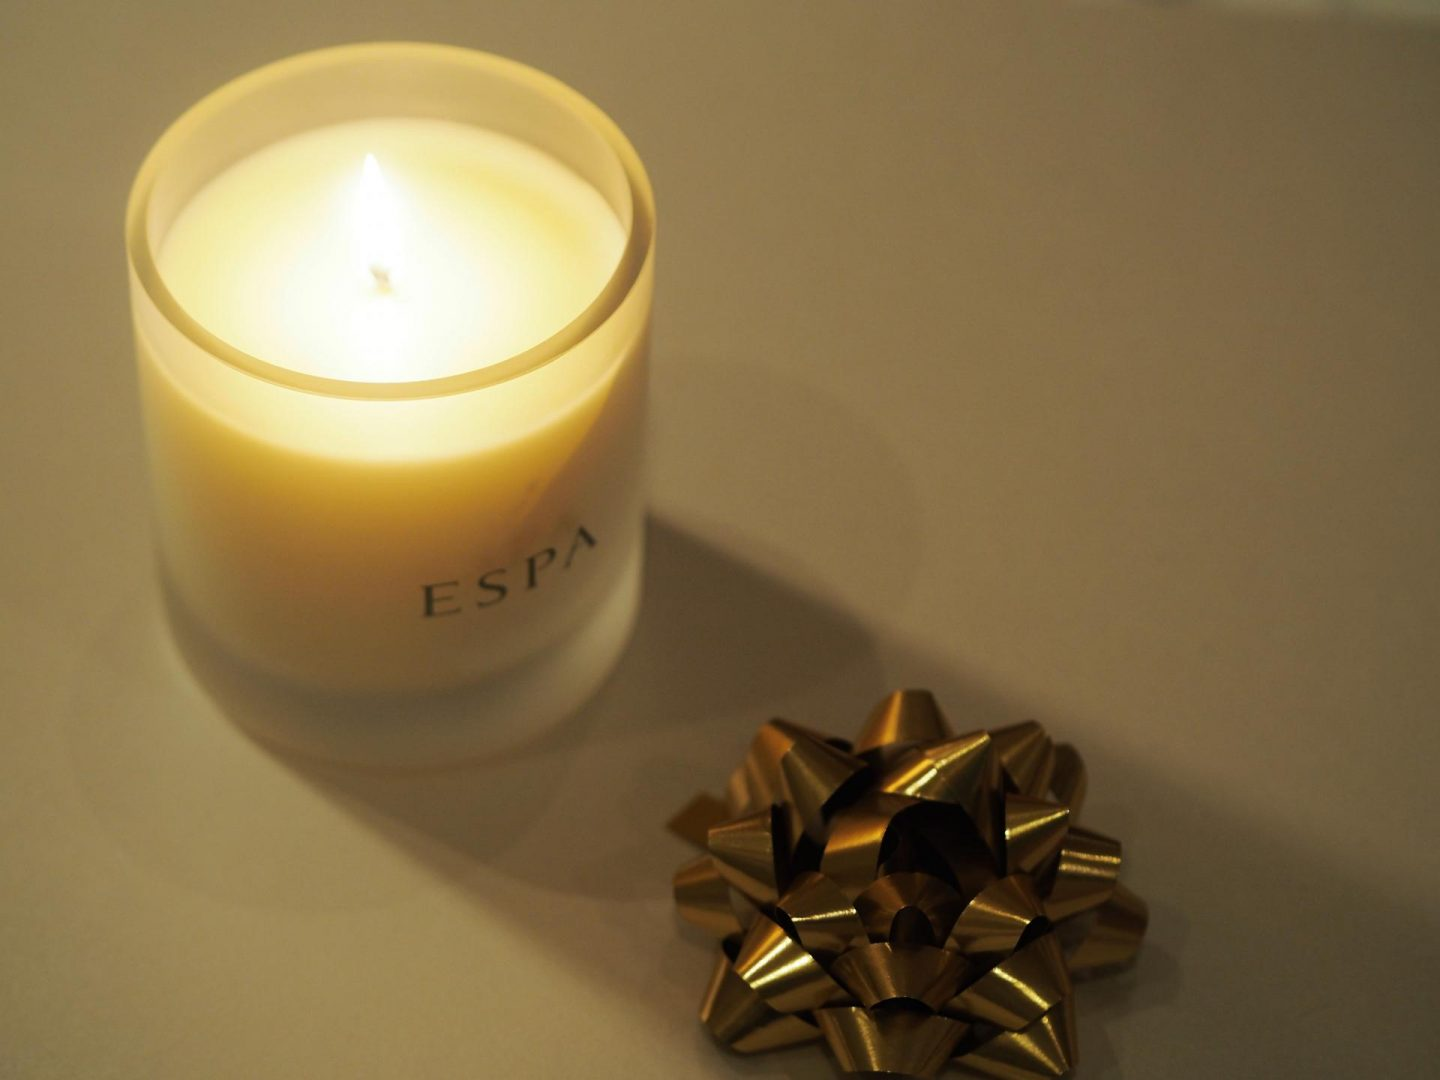 ESPA Winter Spice Candle